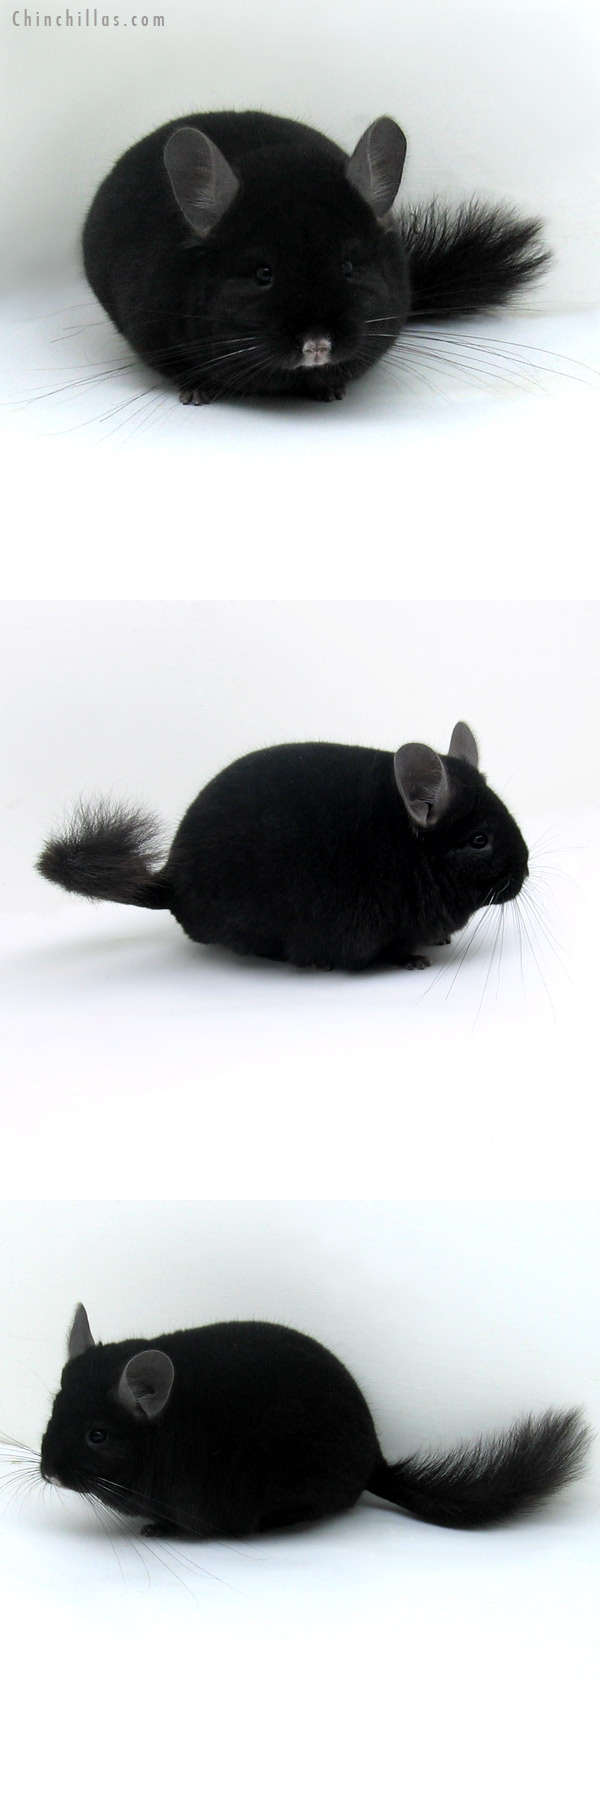 12013 Herd Improvement Quality Ebony Male Chinchilla